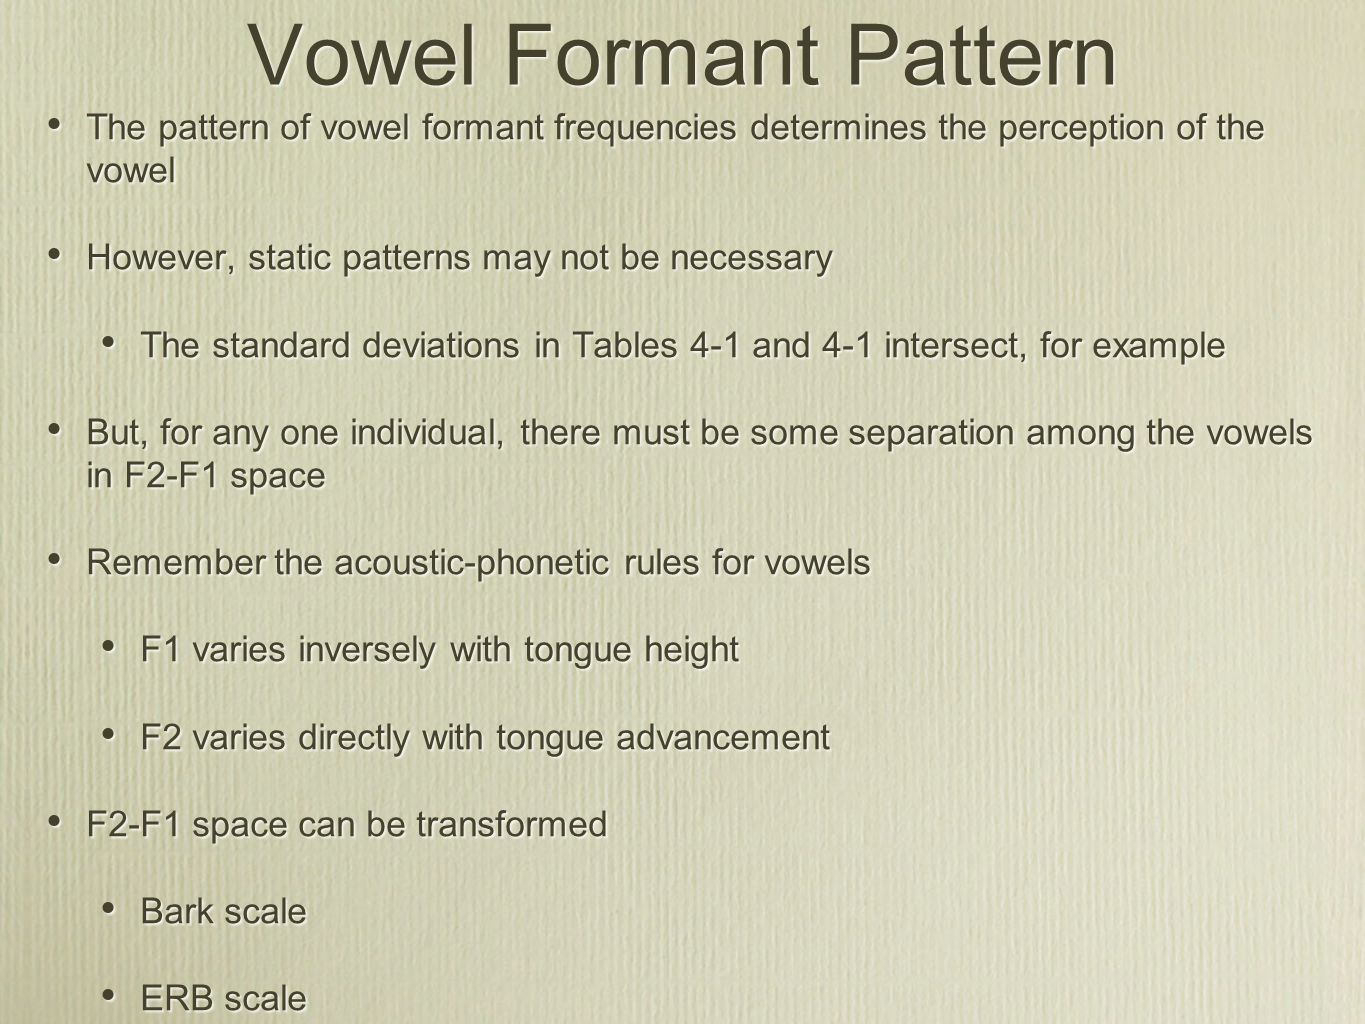 Vowel Formant Pattern The pattern of vowel formant frequencies determines the perception of the vowel.